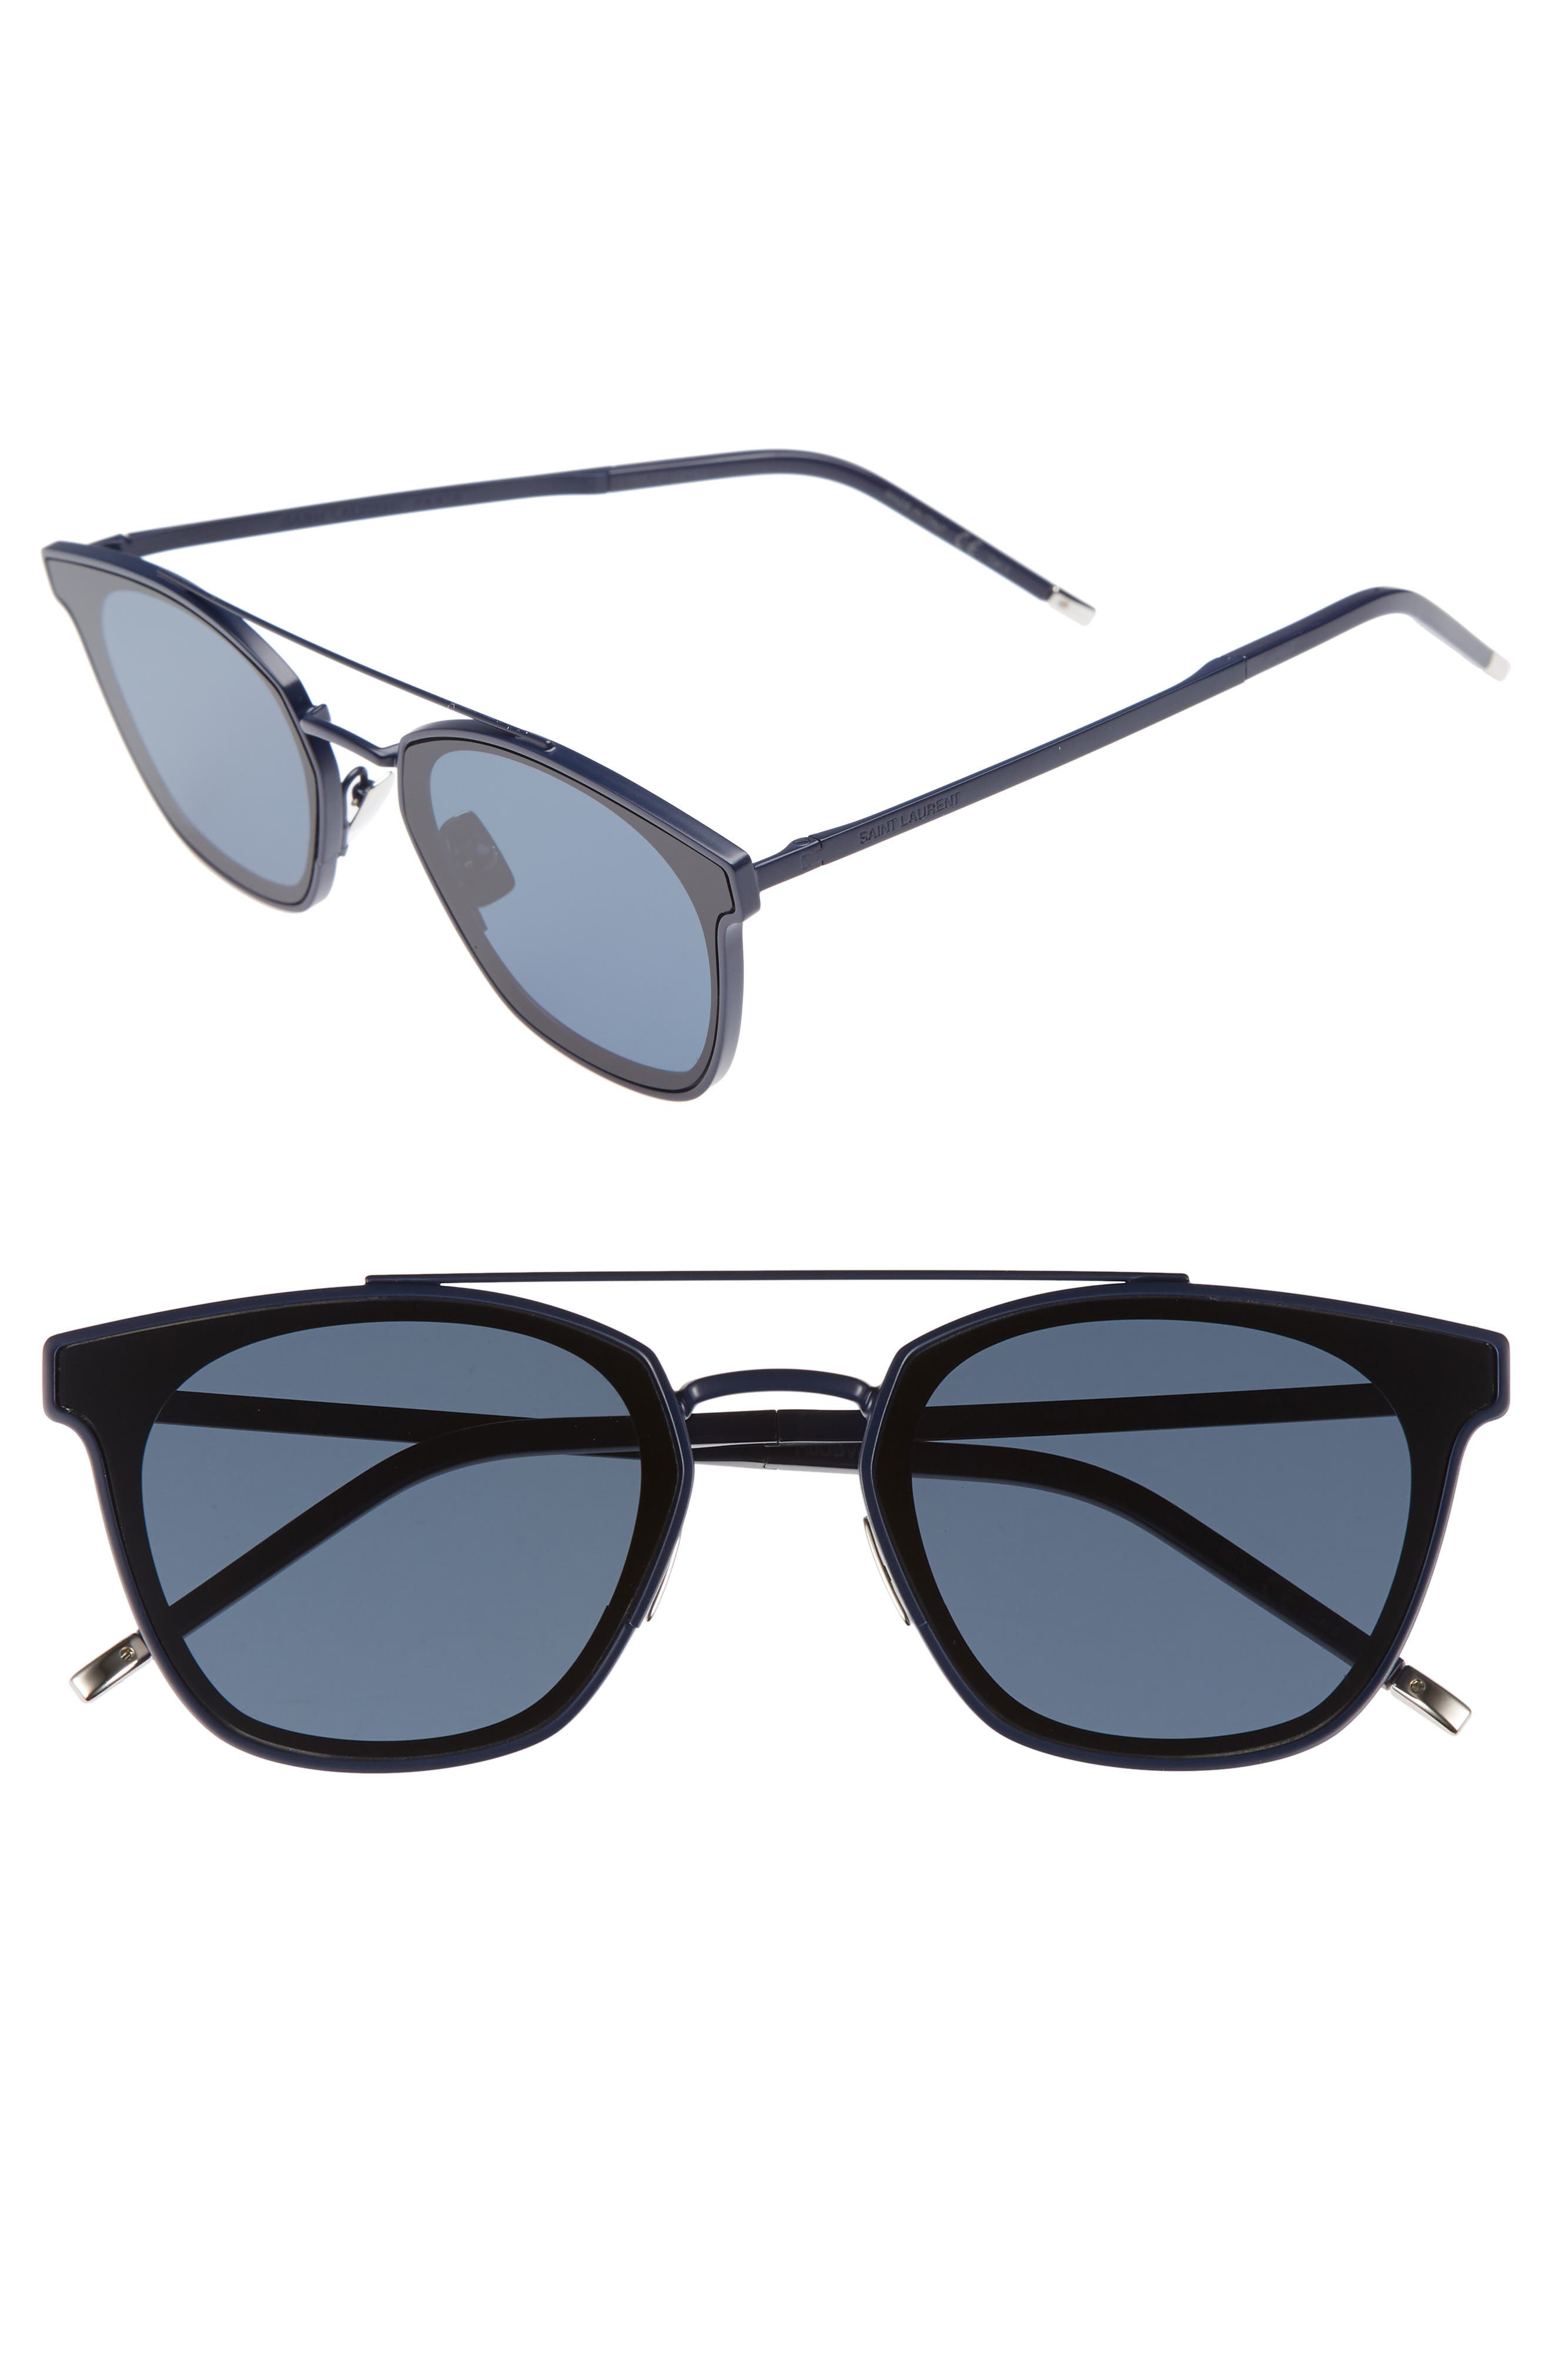 SL 28 61mm Polarized Sunglasses,                         Main,                         color, Blue